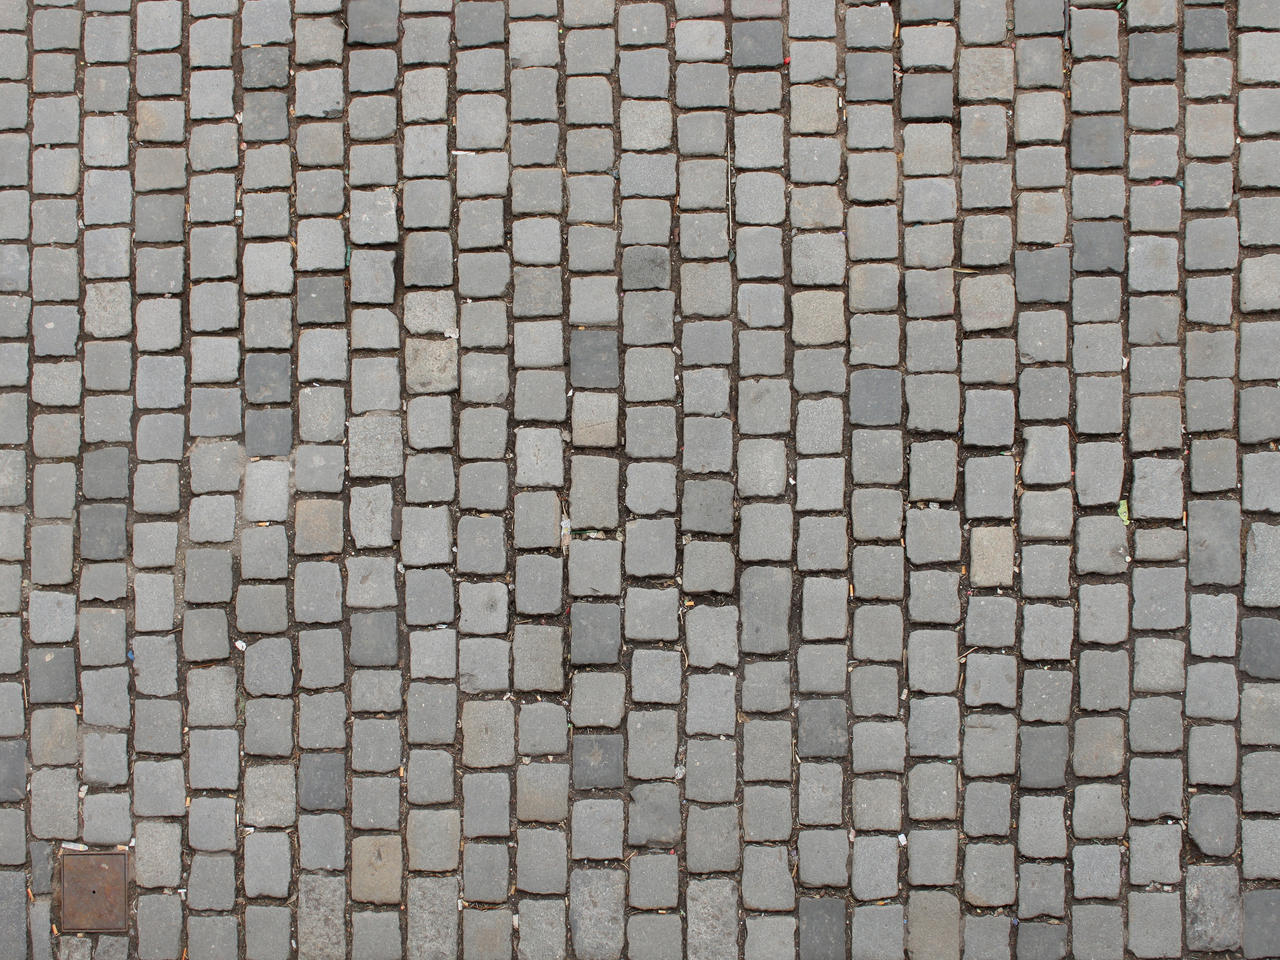 Floor texture 8 by agf81 on deviantart